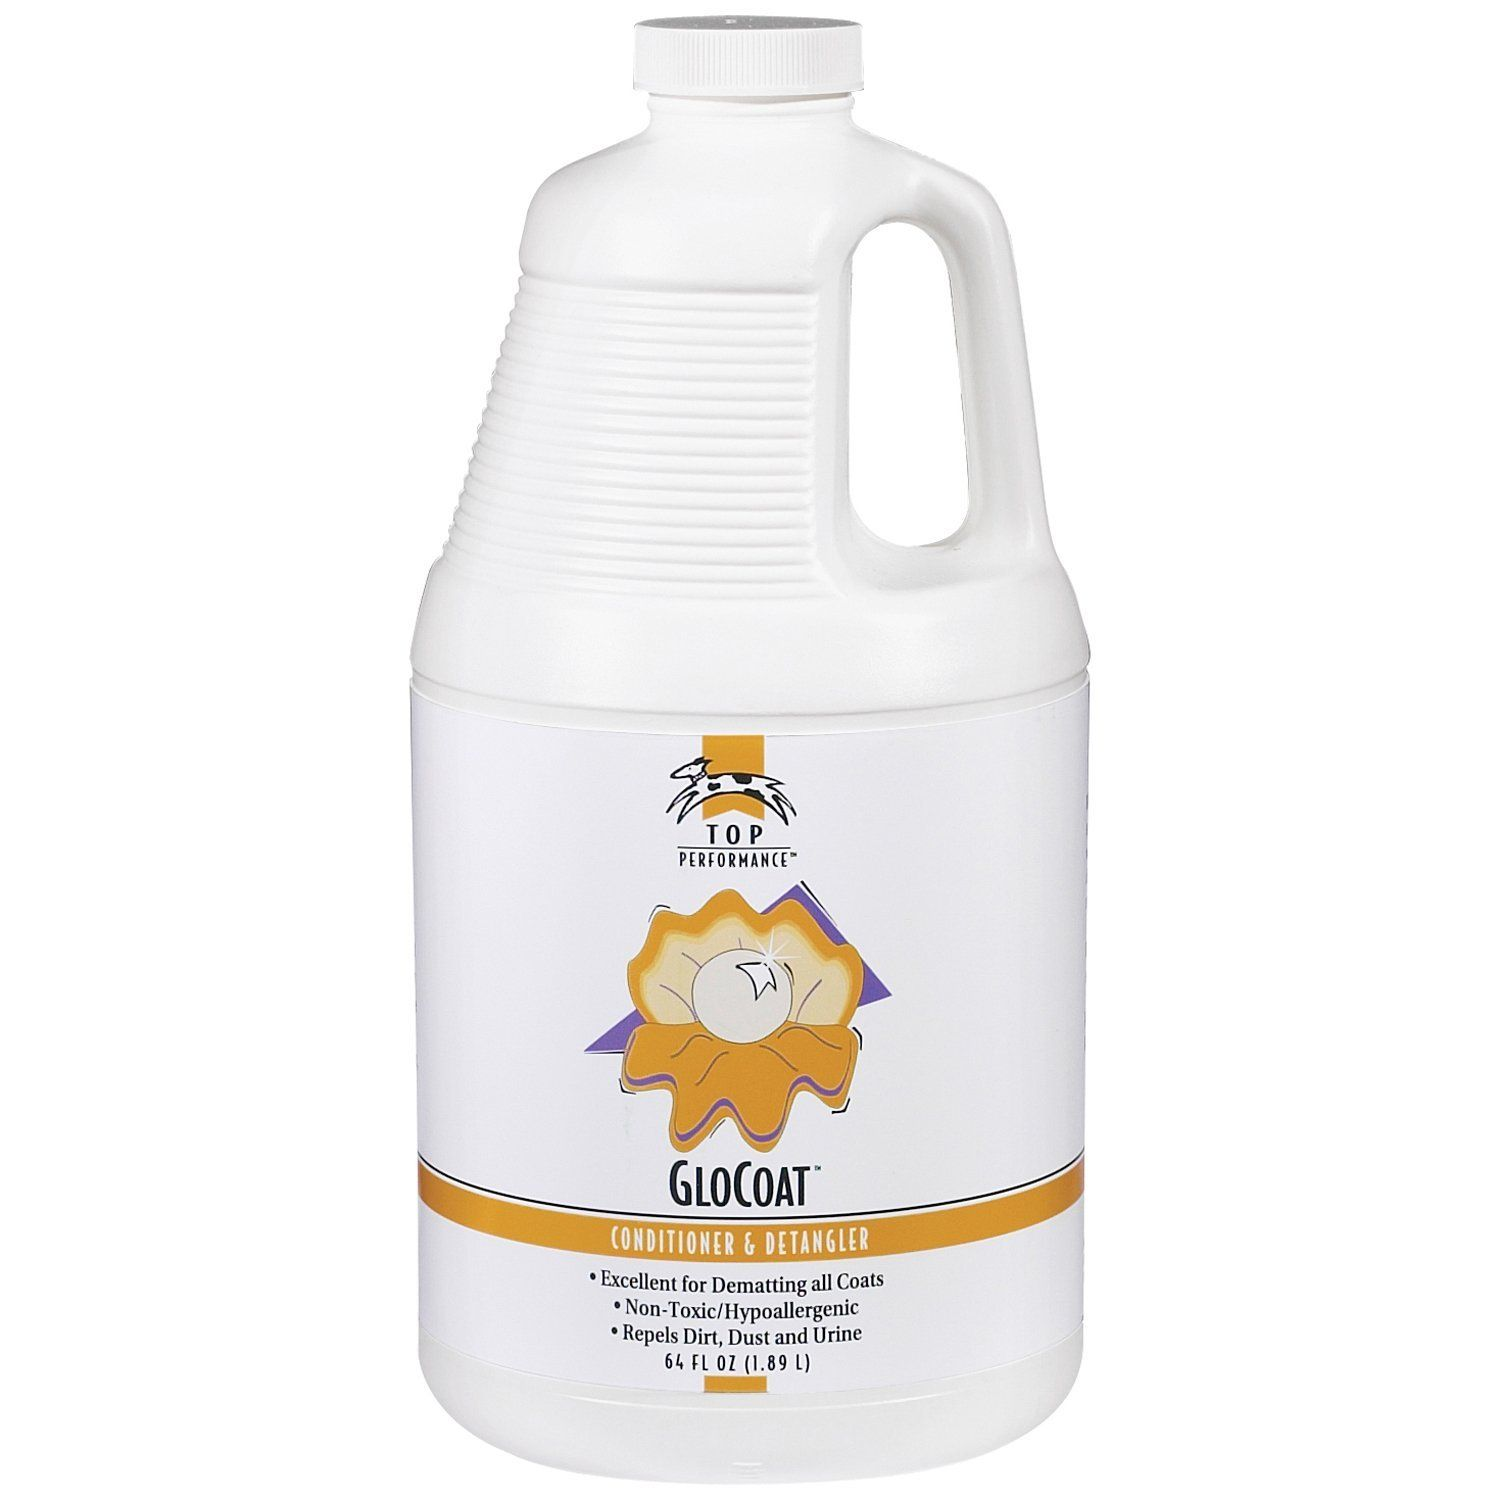 Top Performance Glocoat Pet Conditioner And Detangler 12 Ounce